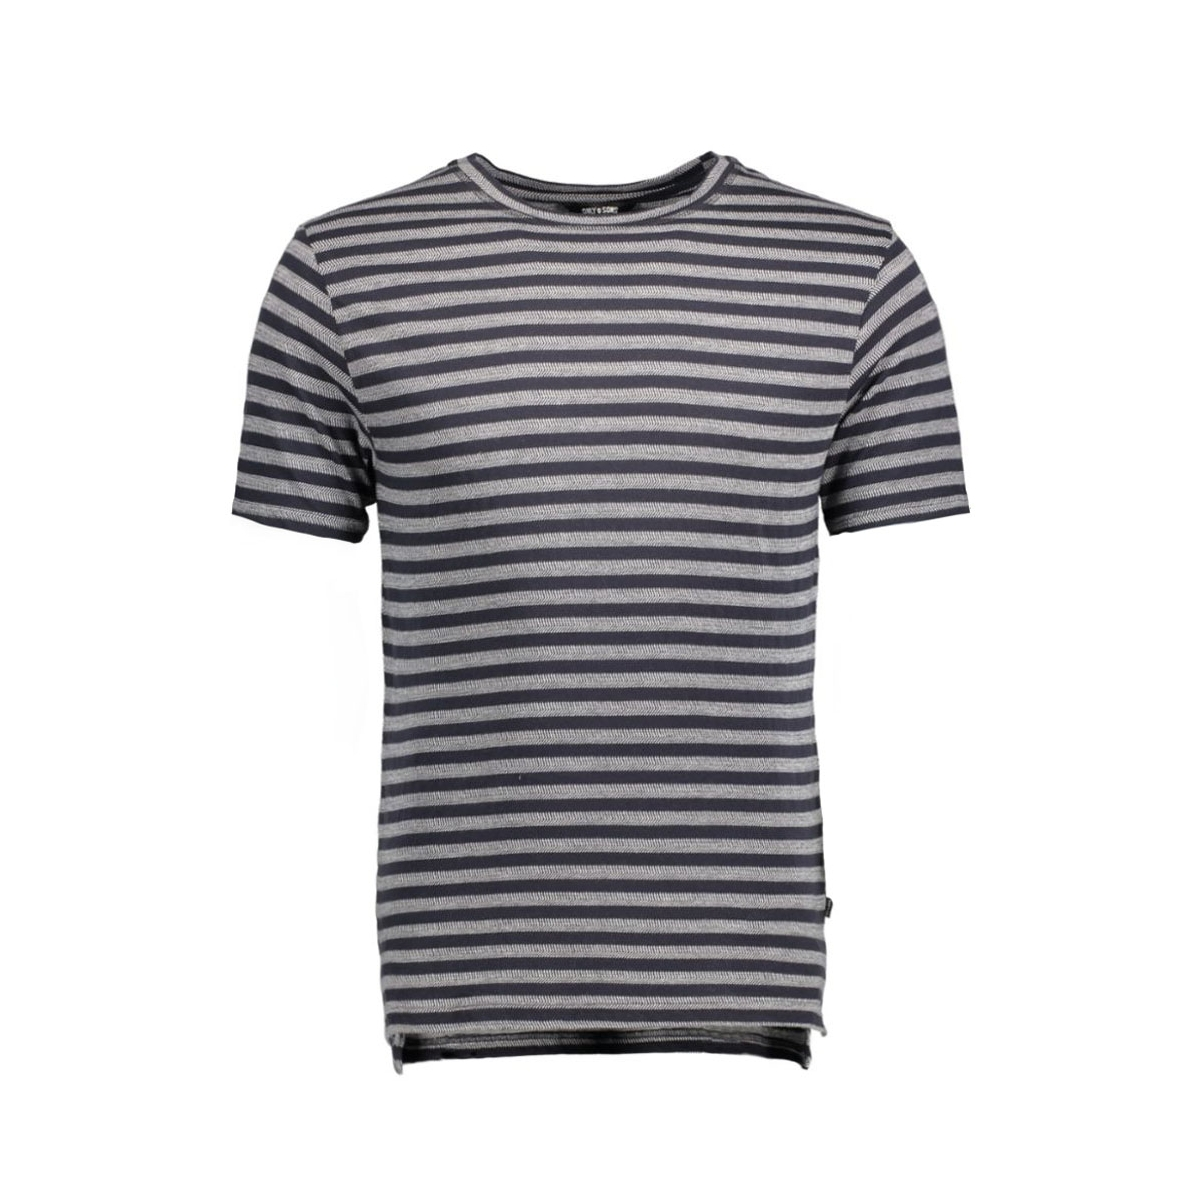 onsallan fitted tee 22004649 only & sons t-shirt dark navy